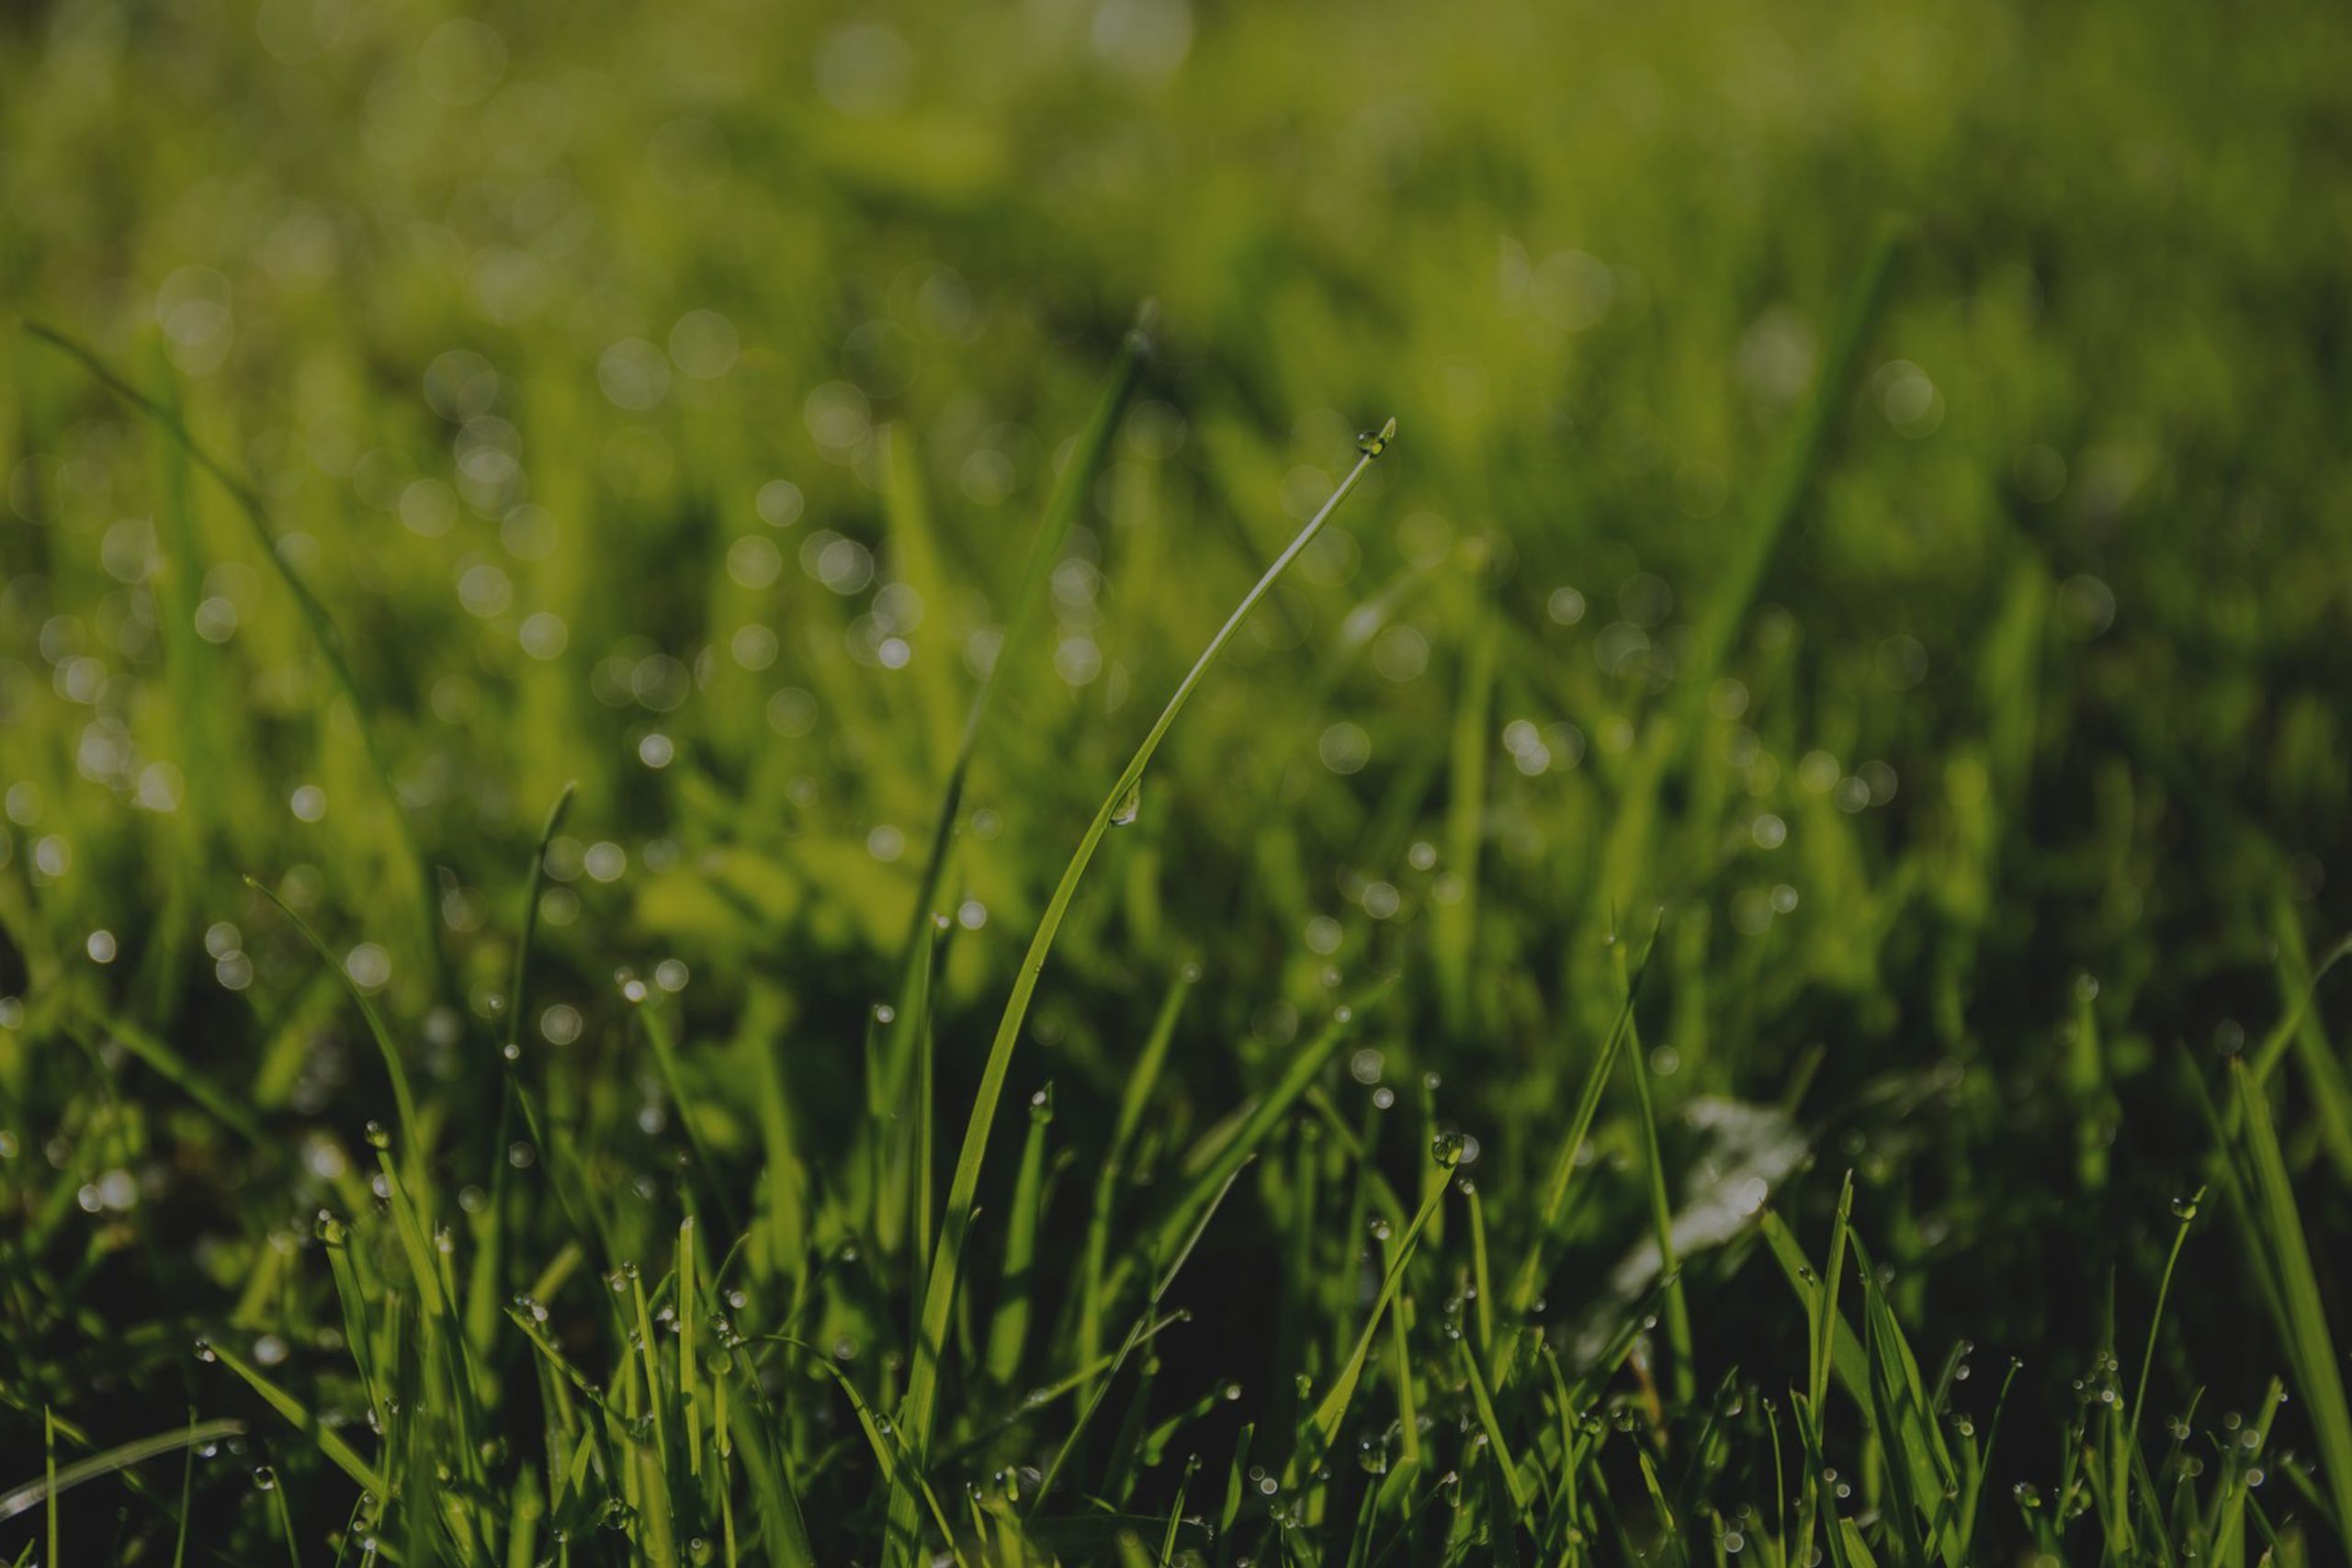 Taking Care of Your Dallas Suburbs Lawn Without Wasting Resources